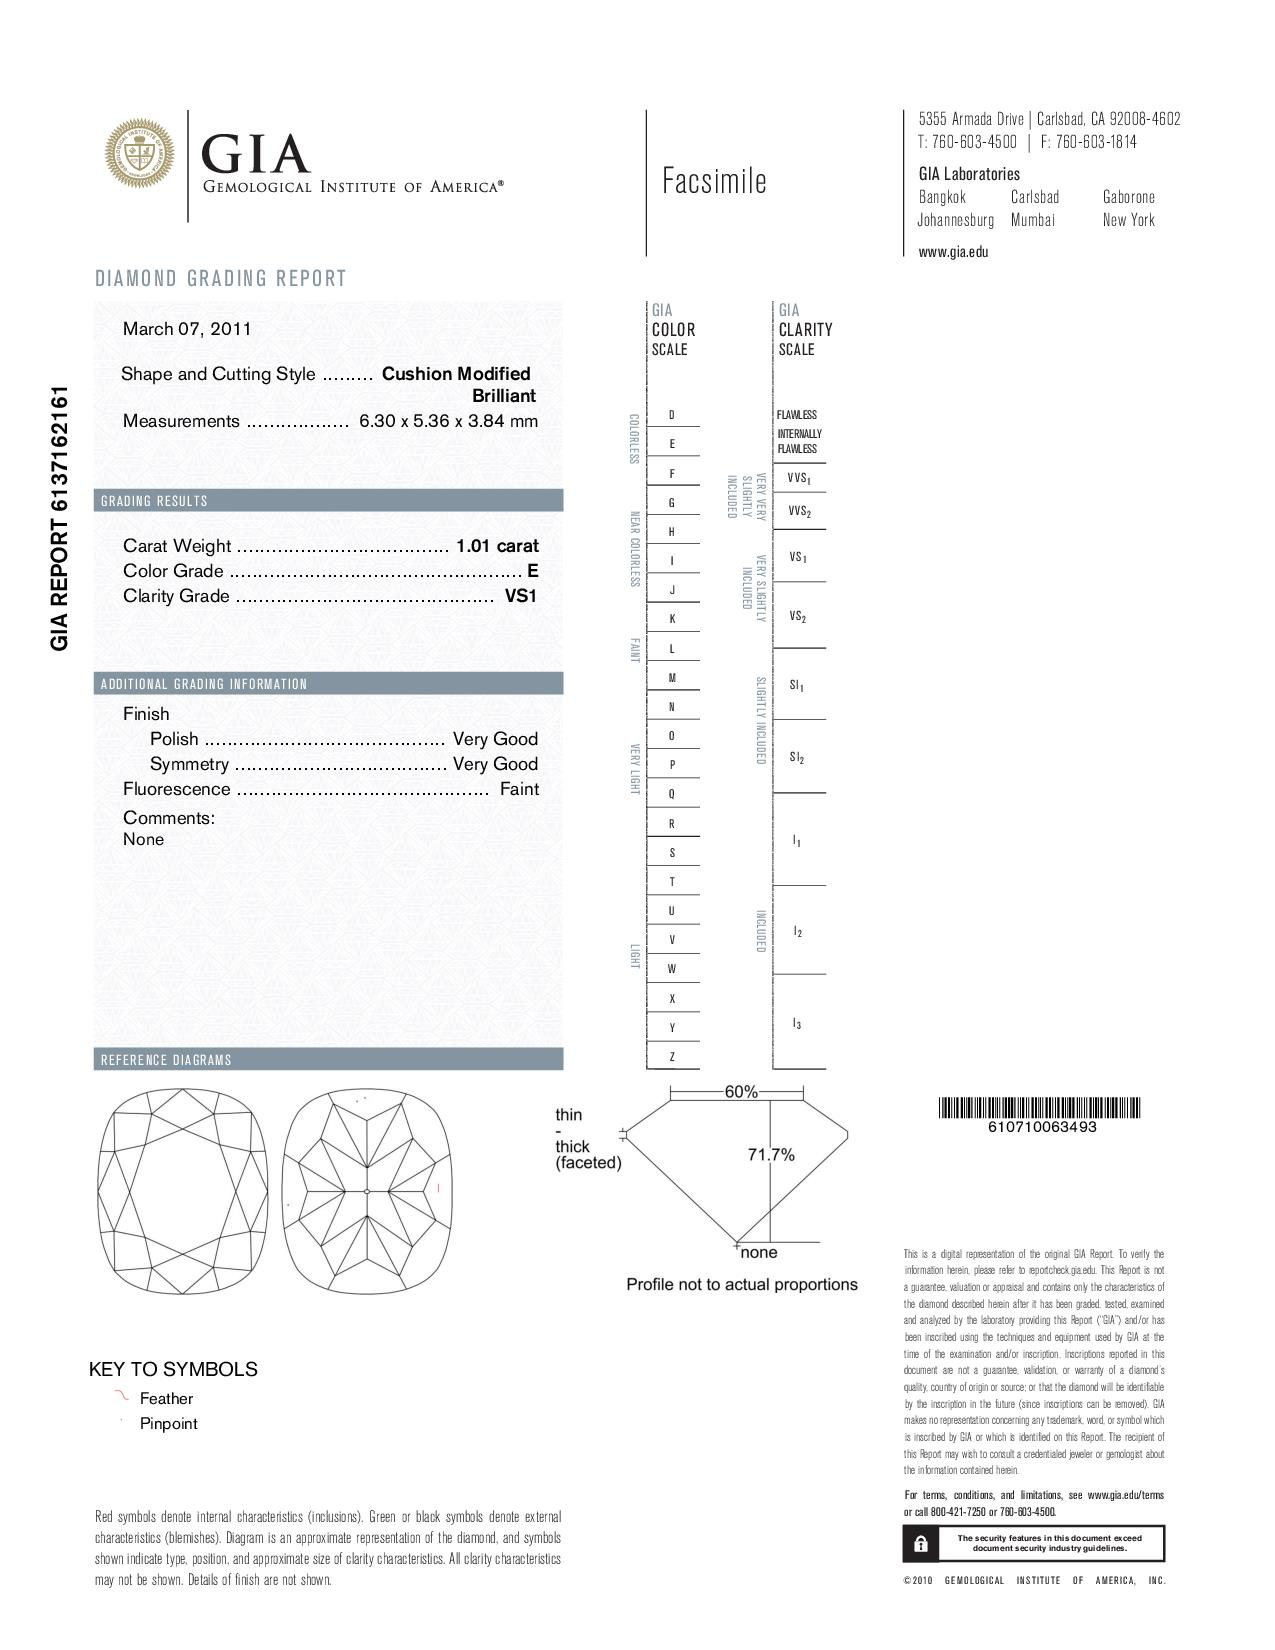 This is a 1.01 carat cushion shape, E color, VS1 clarity natural diamond accompanied by a GIA grading report.